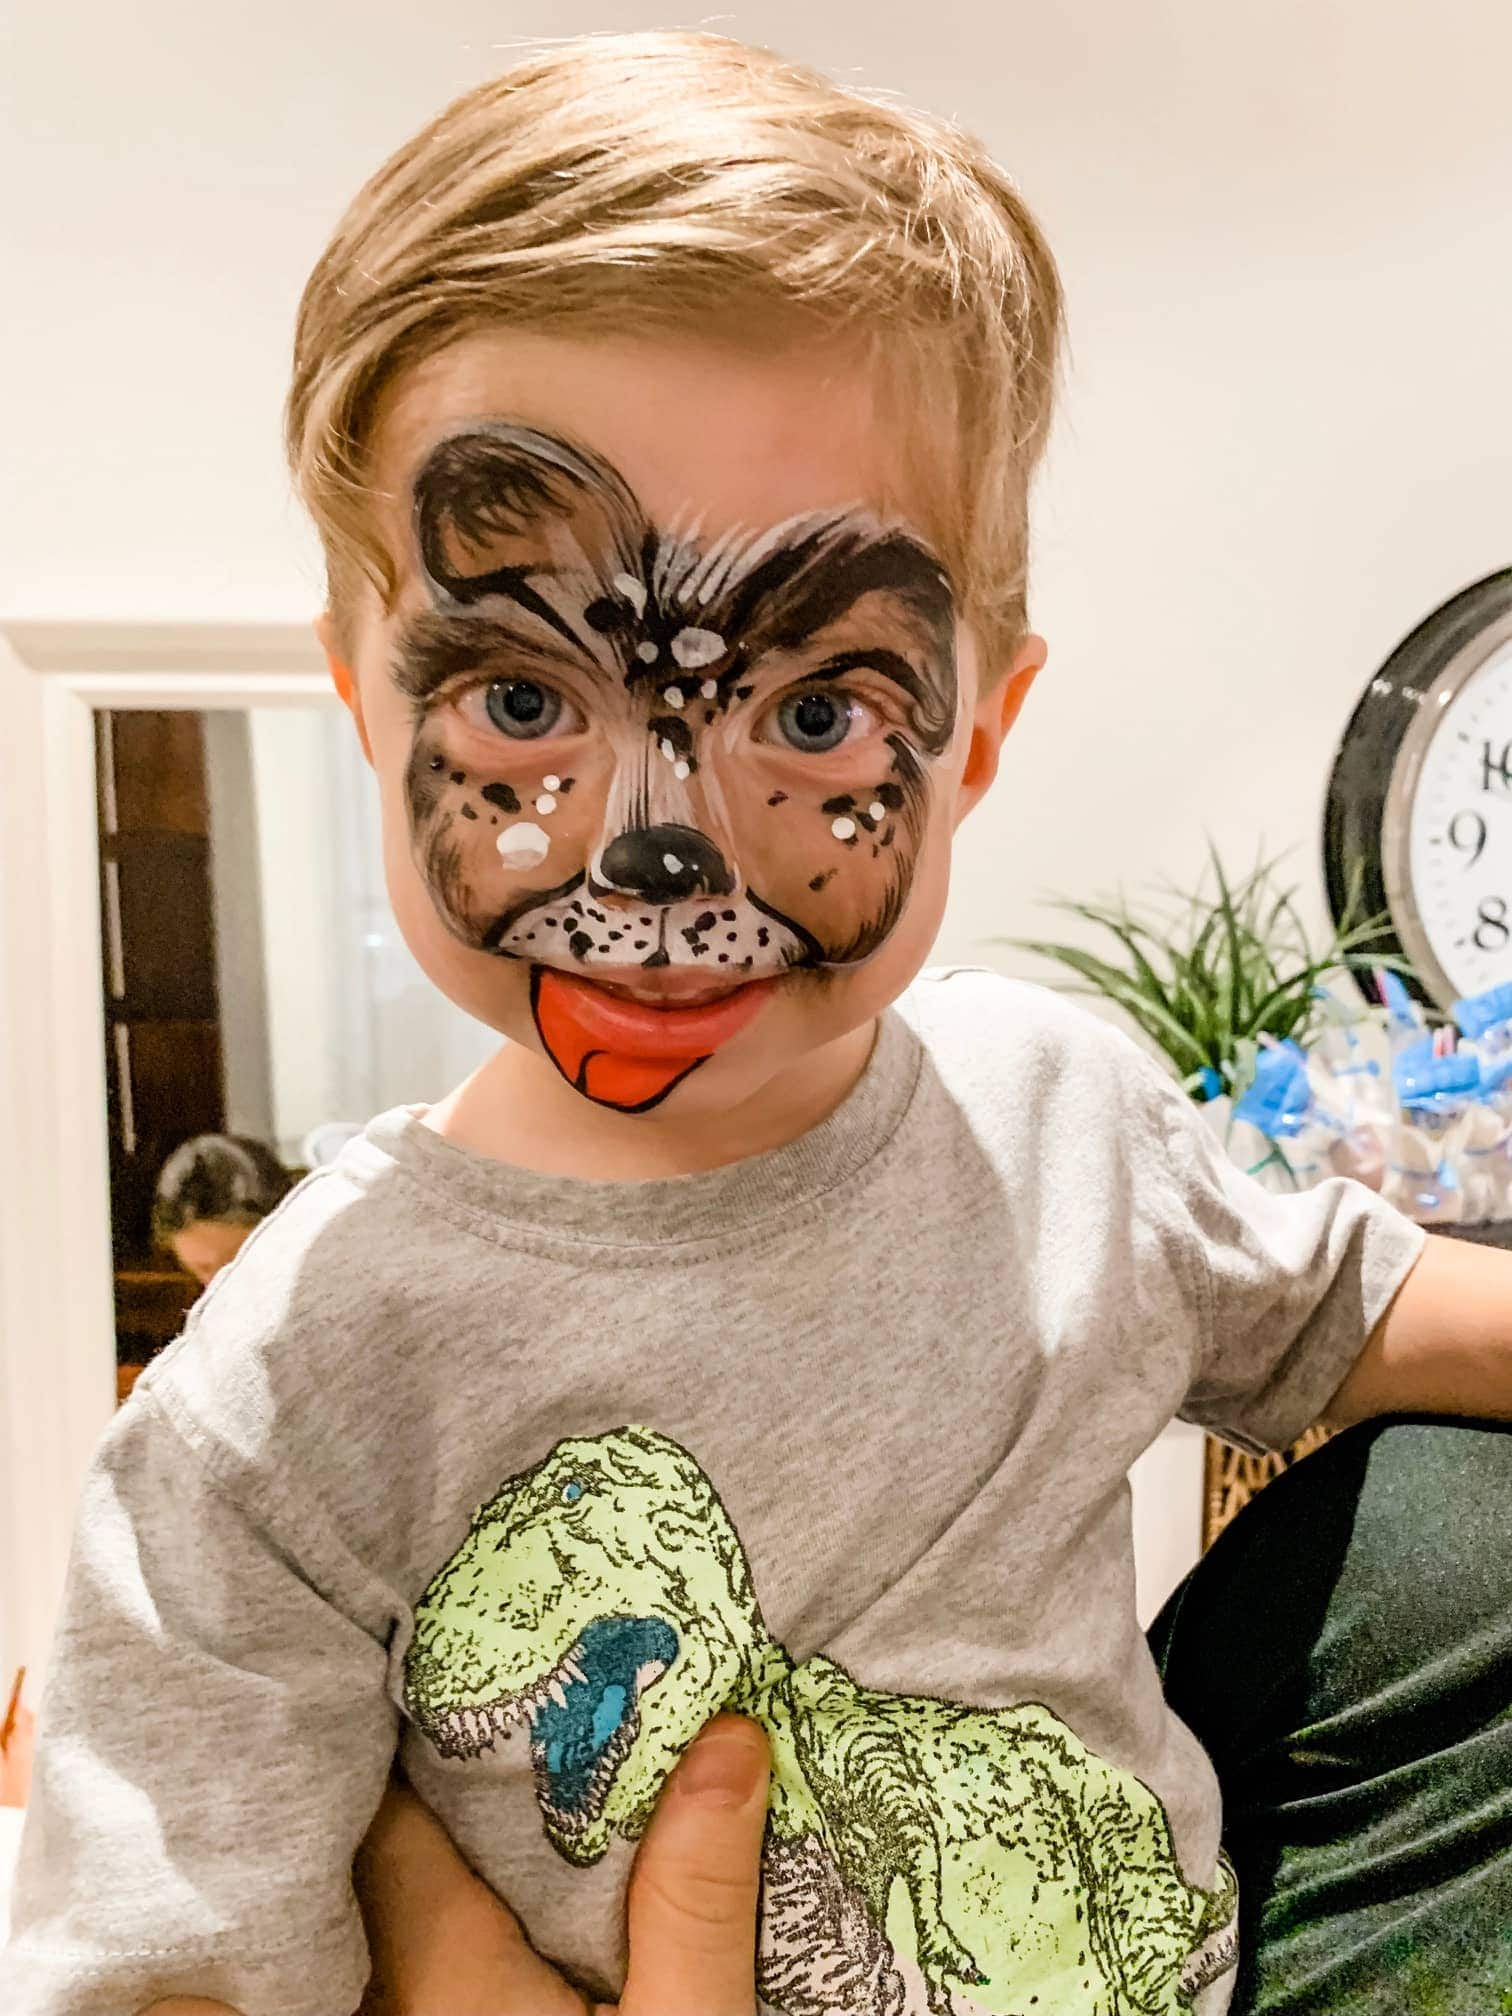 Eddie with face paint on